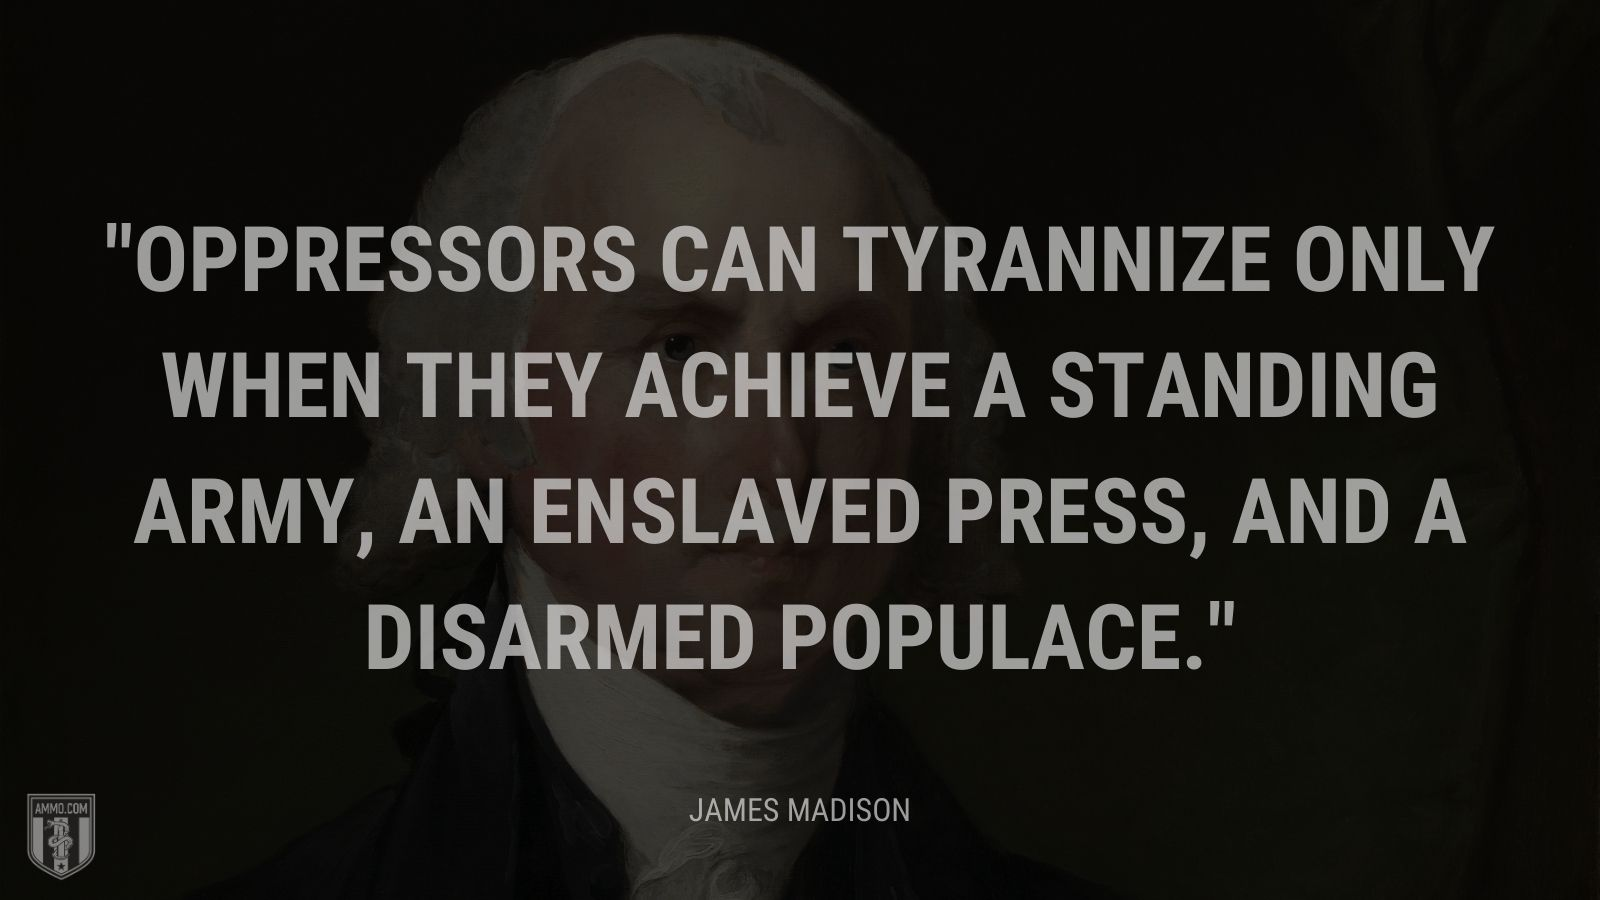 """Oppressors can tyrannize only when they achieve a standing army, an enslaved press, and a disarmed populace."" - James Madison"